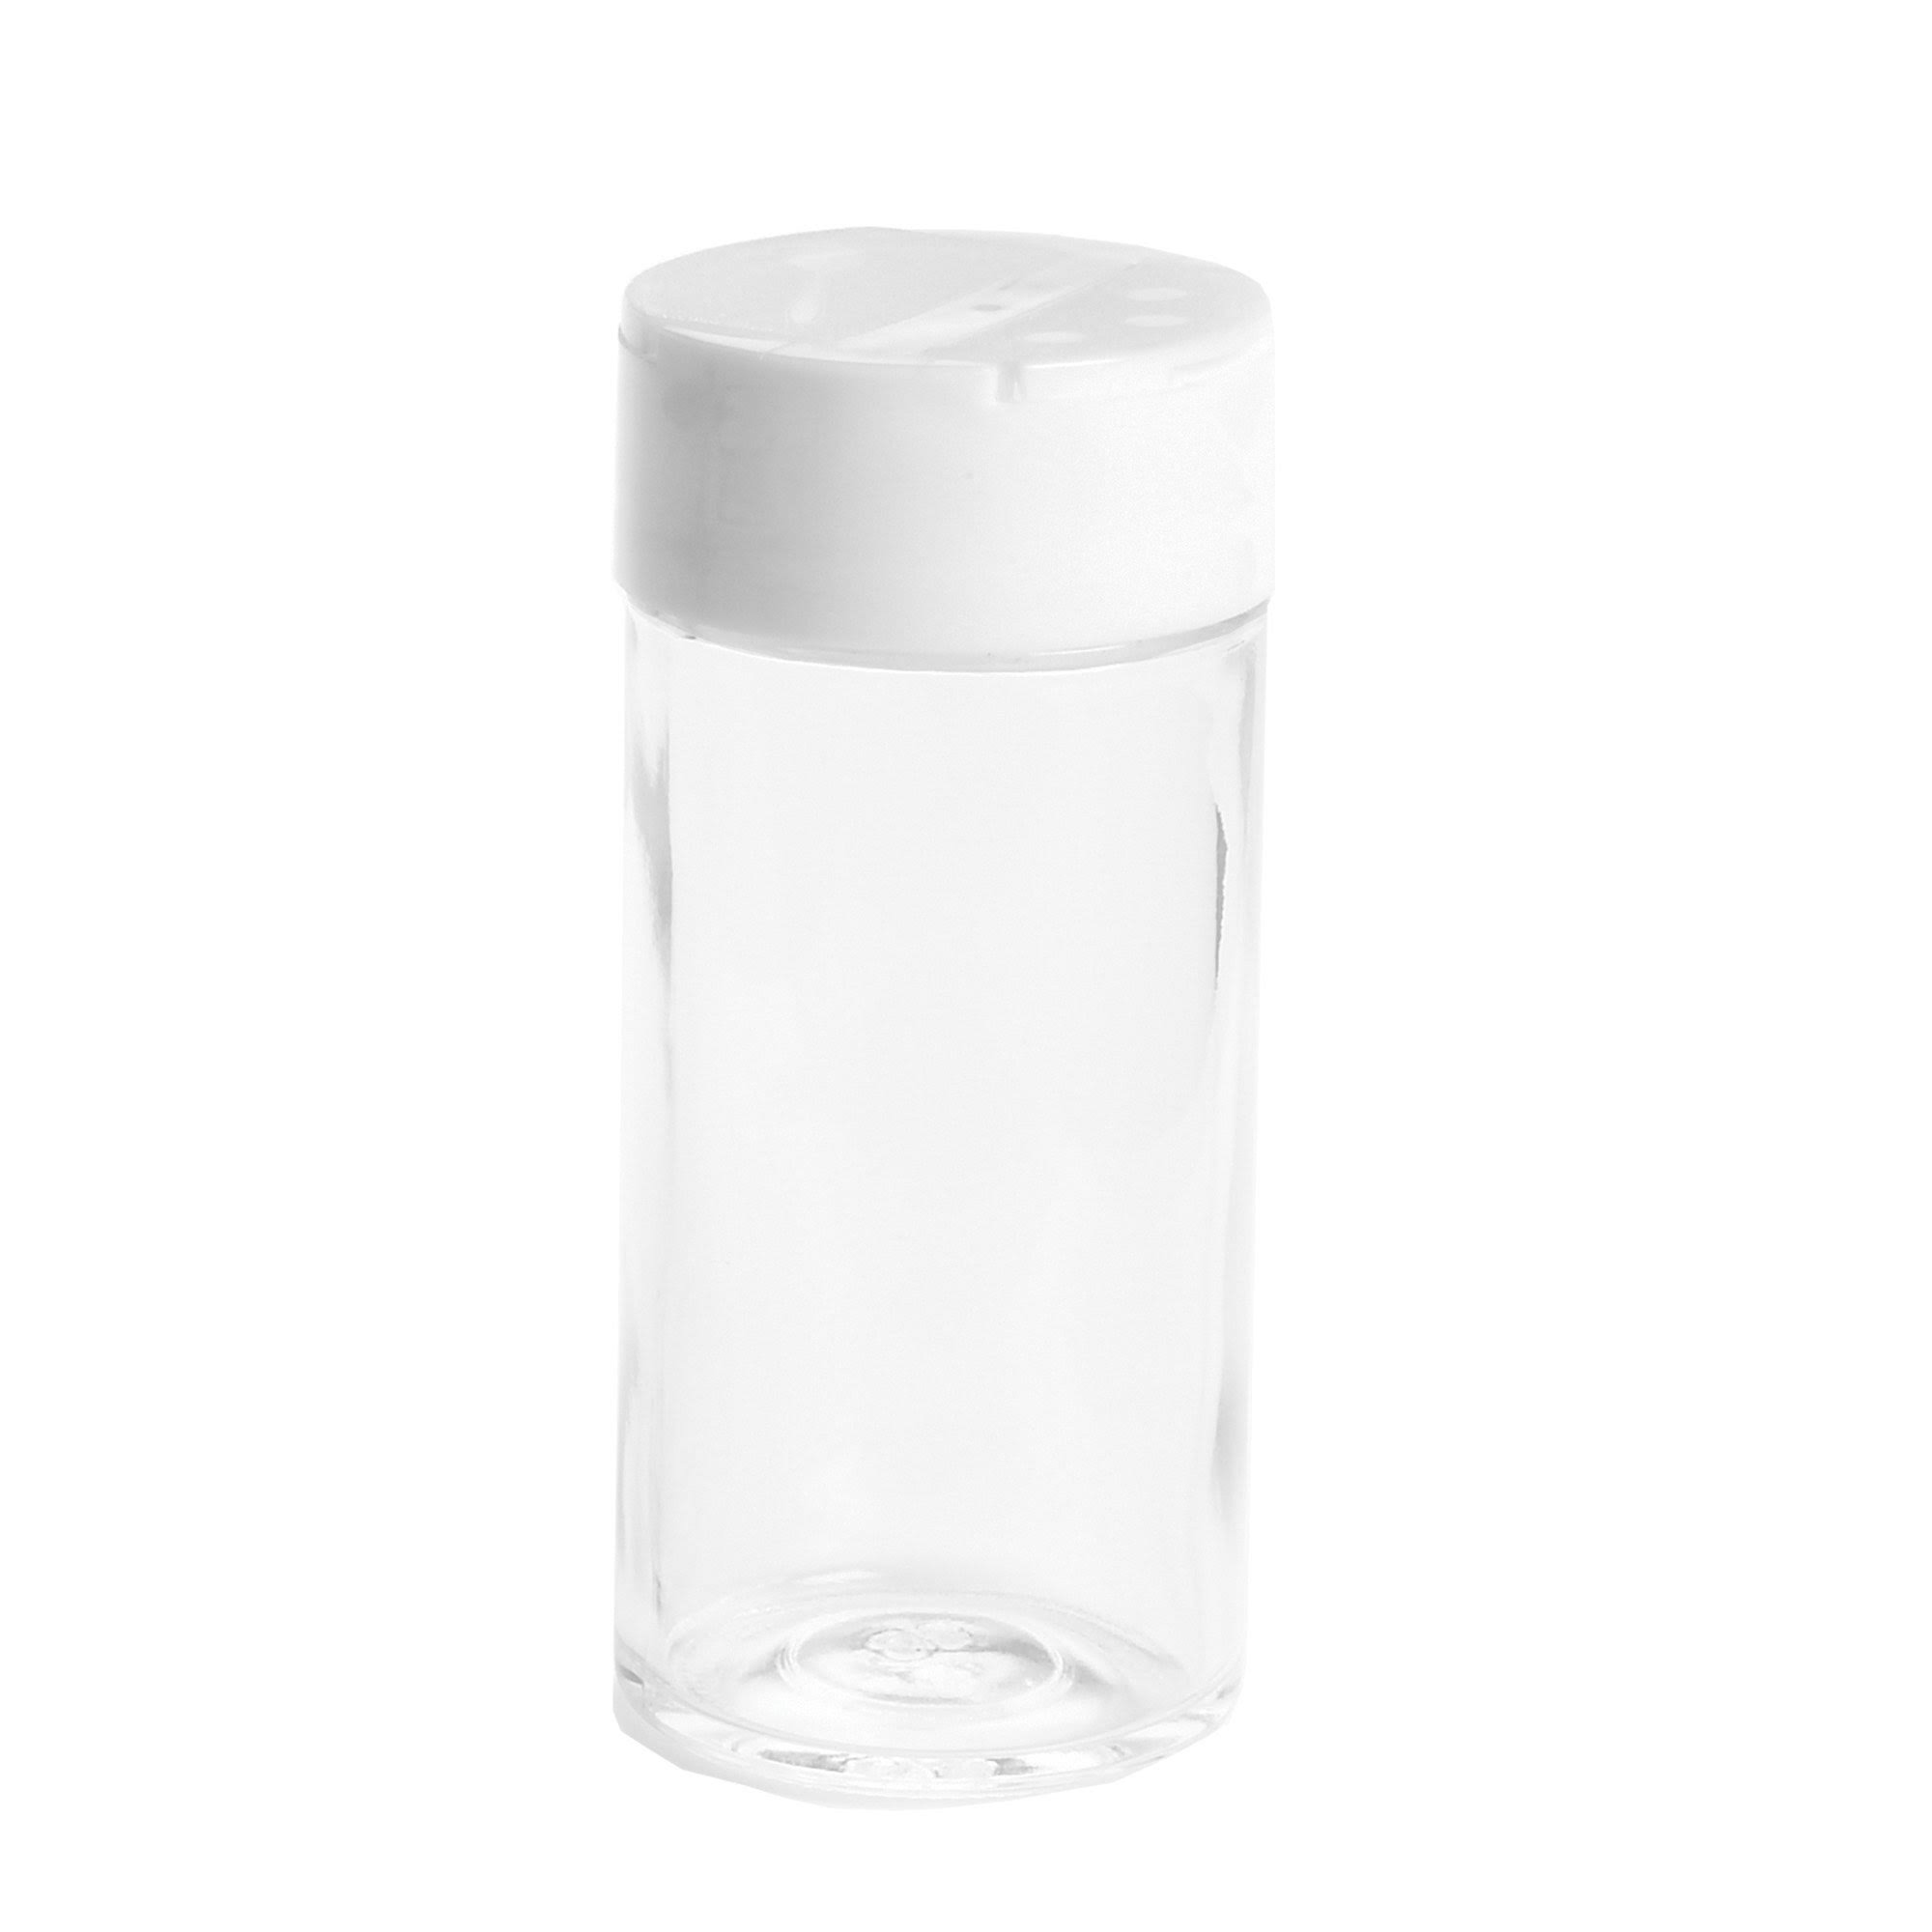 Fox Run Spice Storage Glass Jar, 3 oz